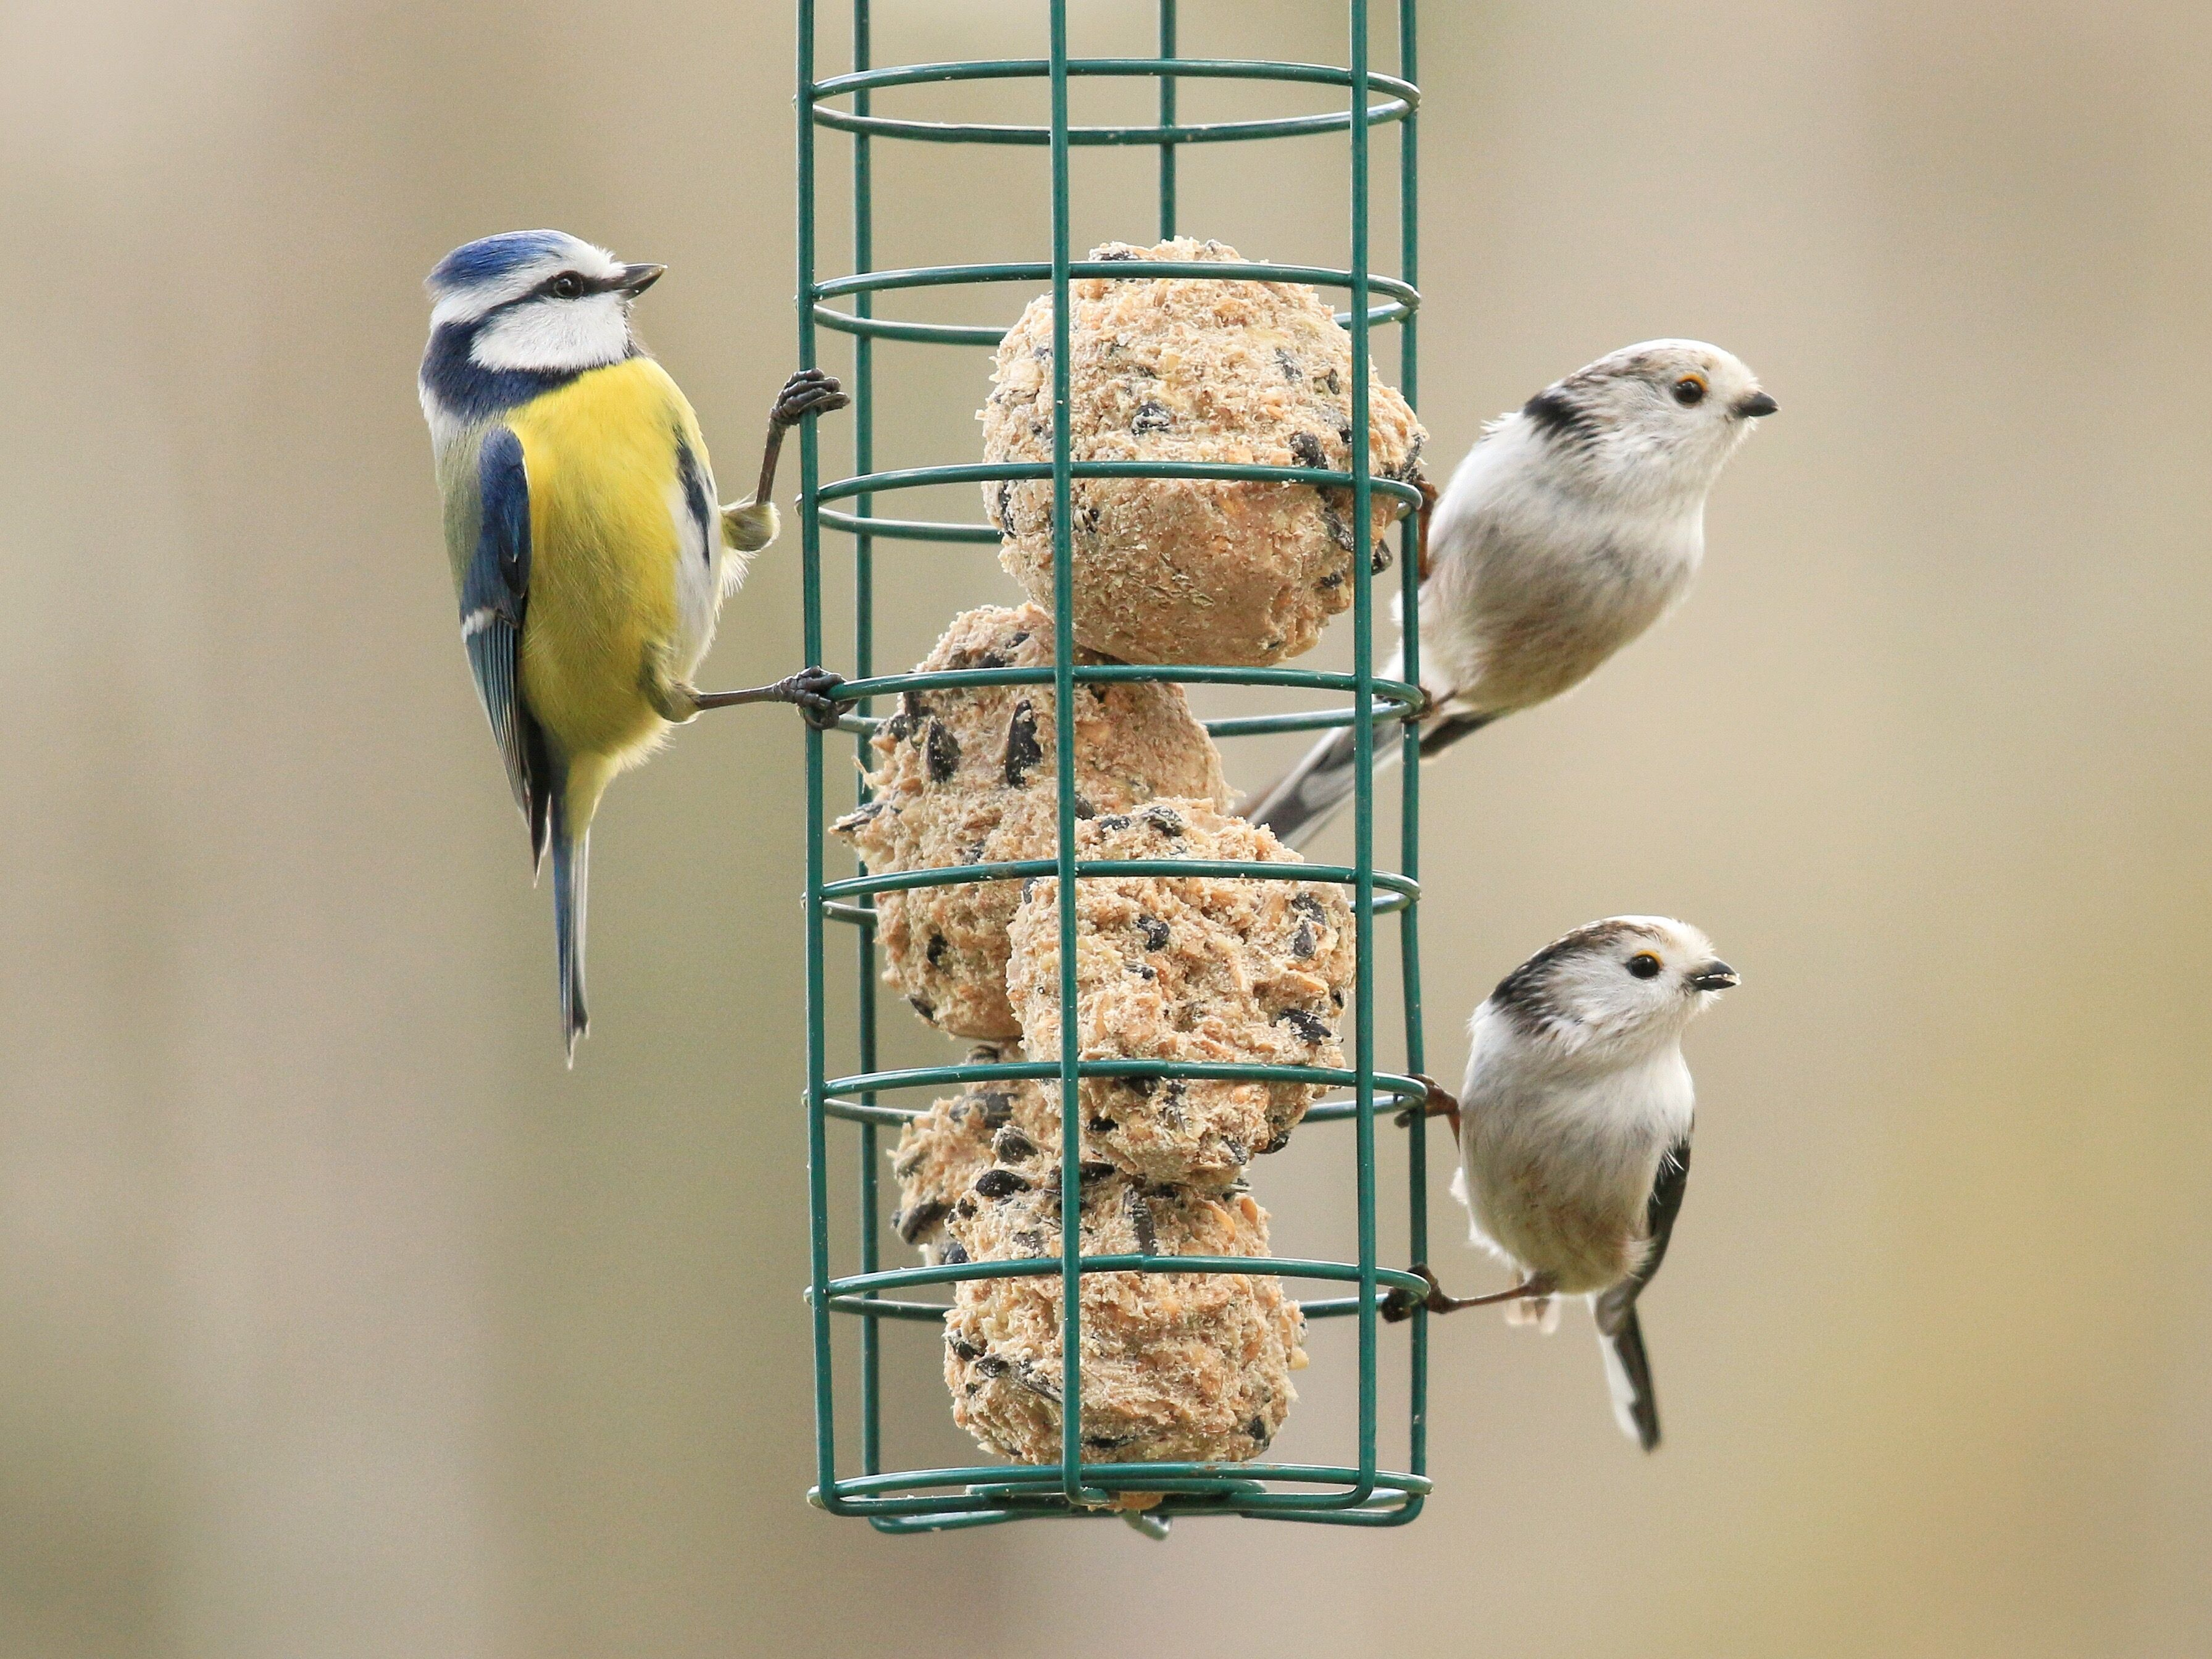 How to Attract More Birds to Your Garden This Winter